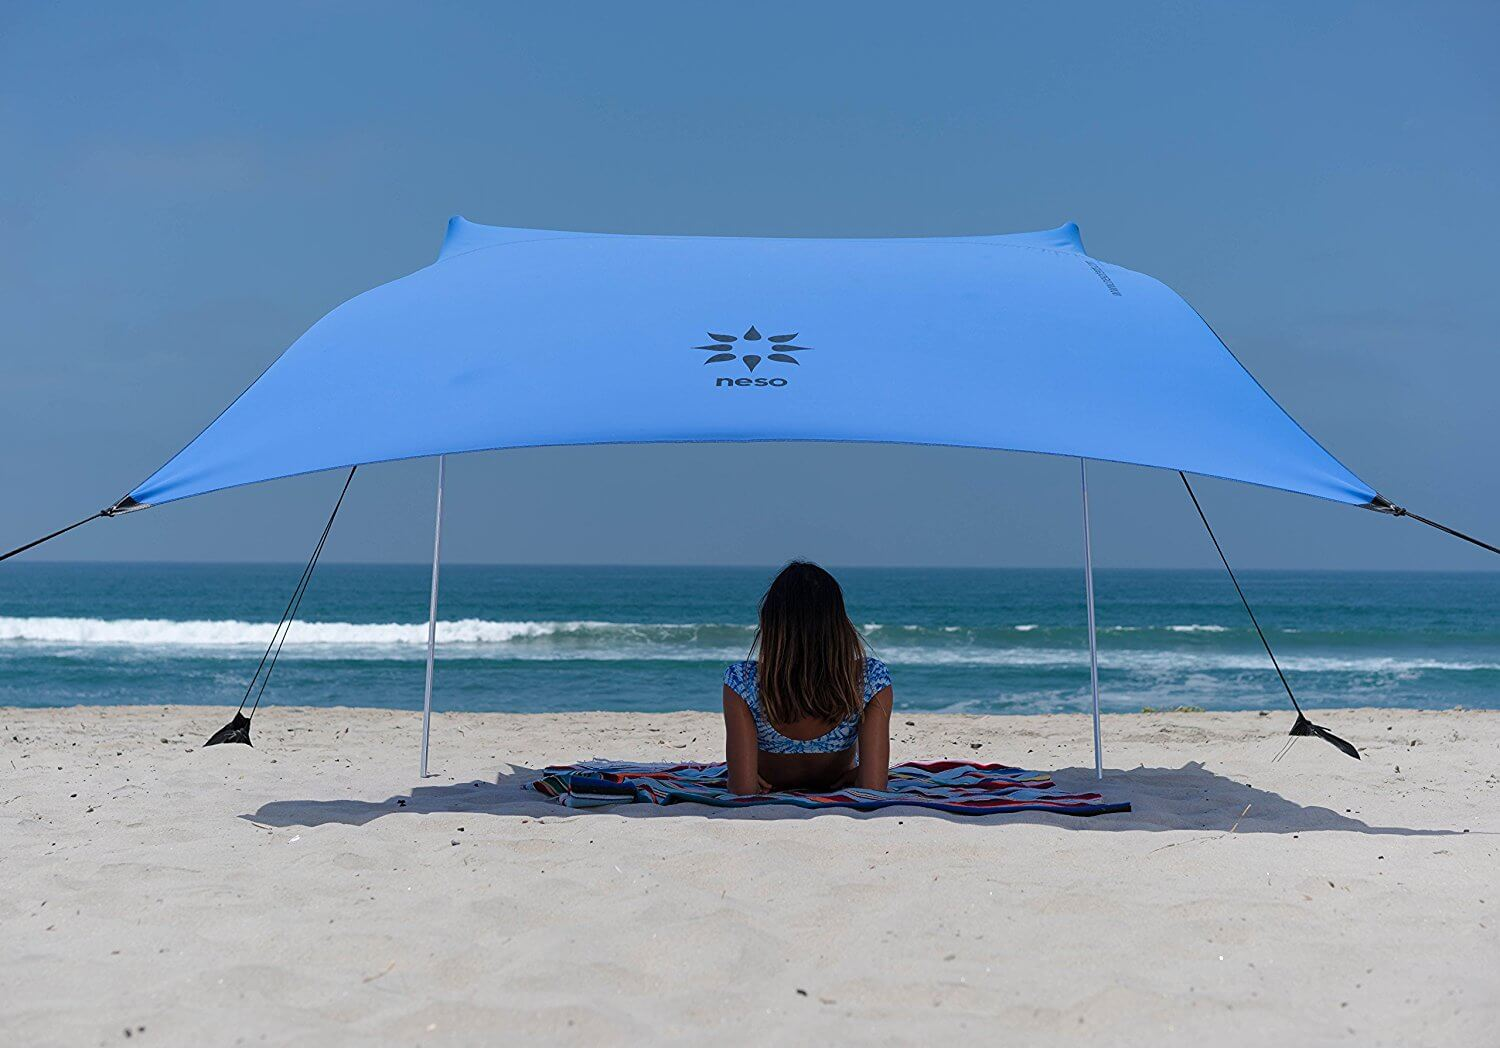 Neso Tents Beach Tent with Sand Anchor Portable Canopy SunShade - 7u0027 x 7 : uv protection tents beach - memphite.com